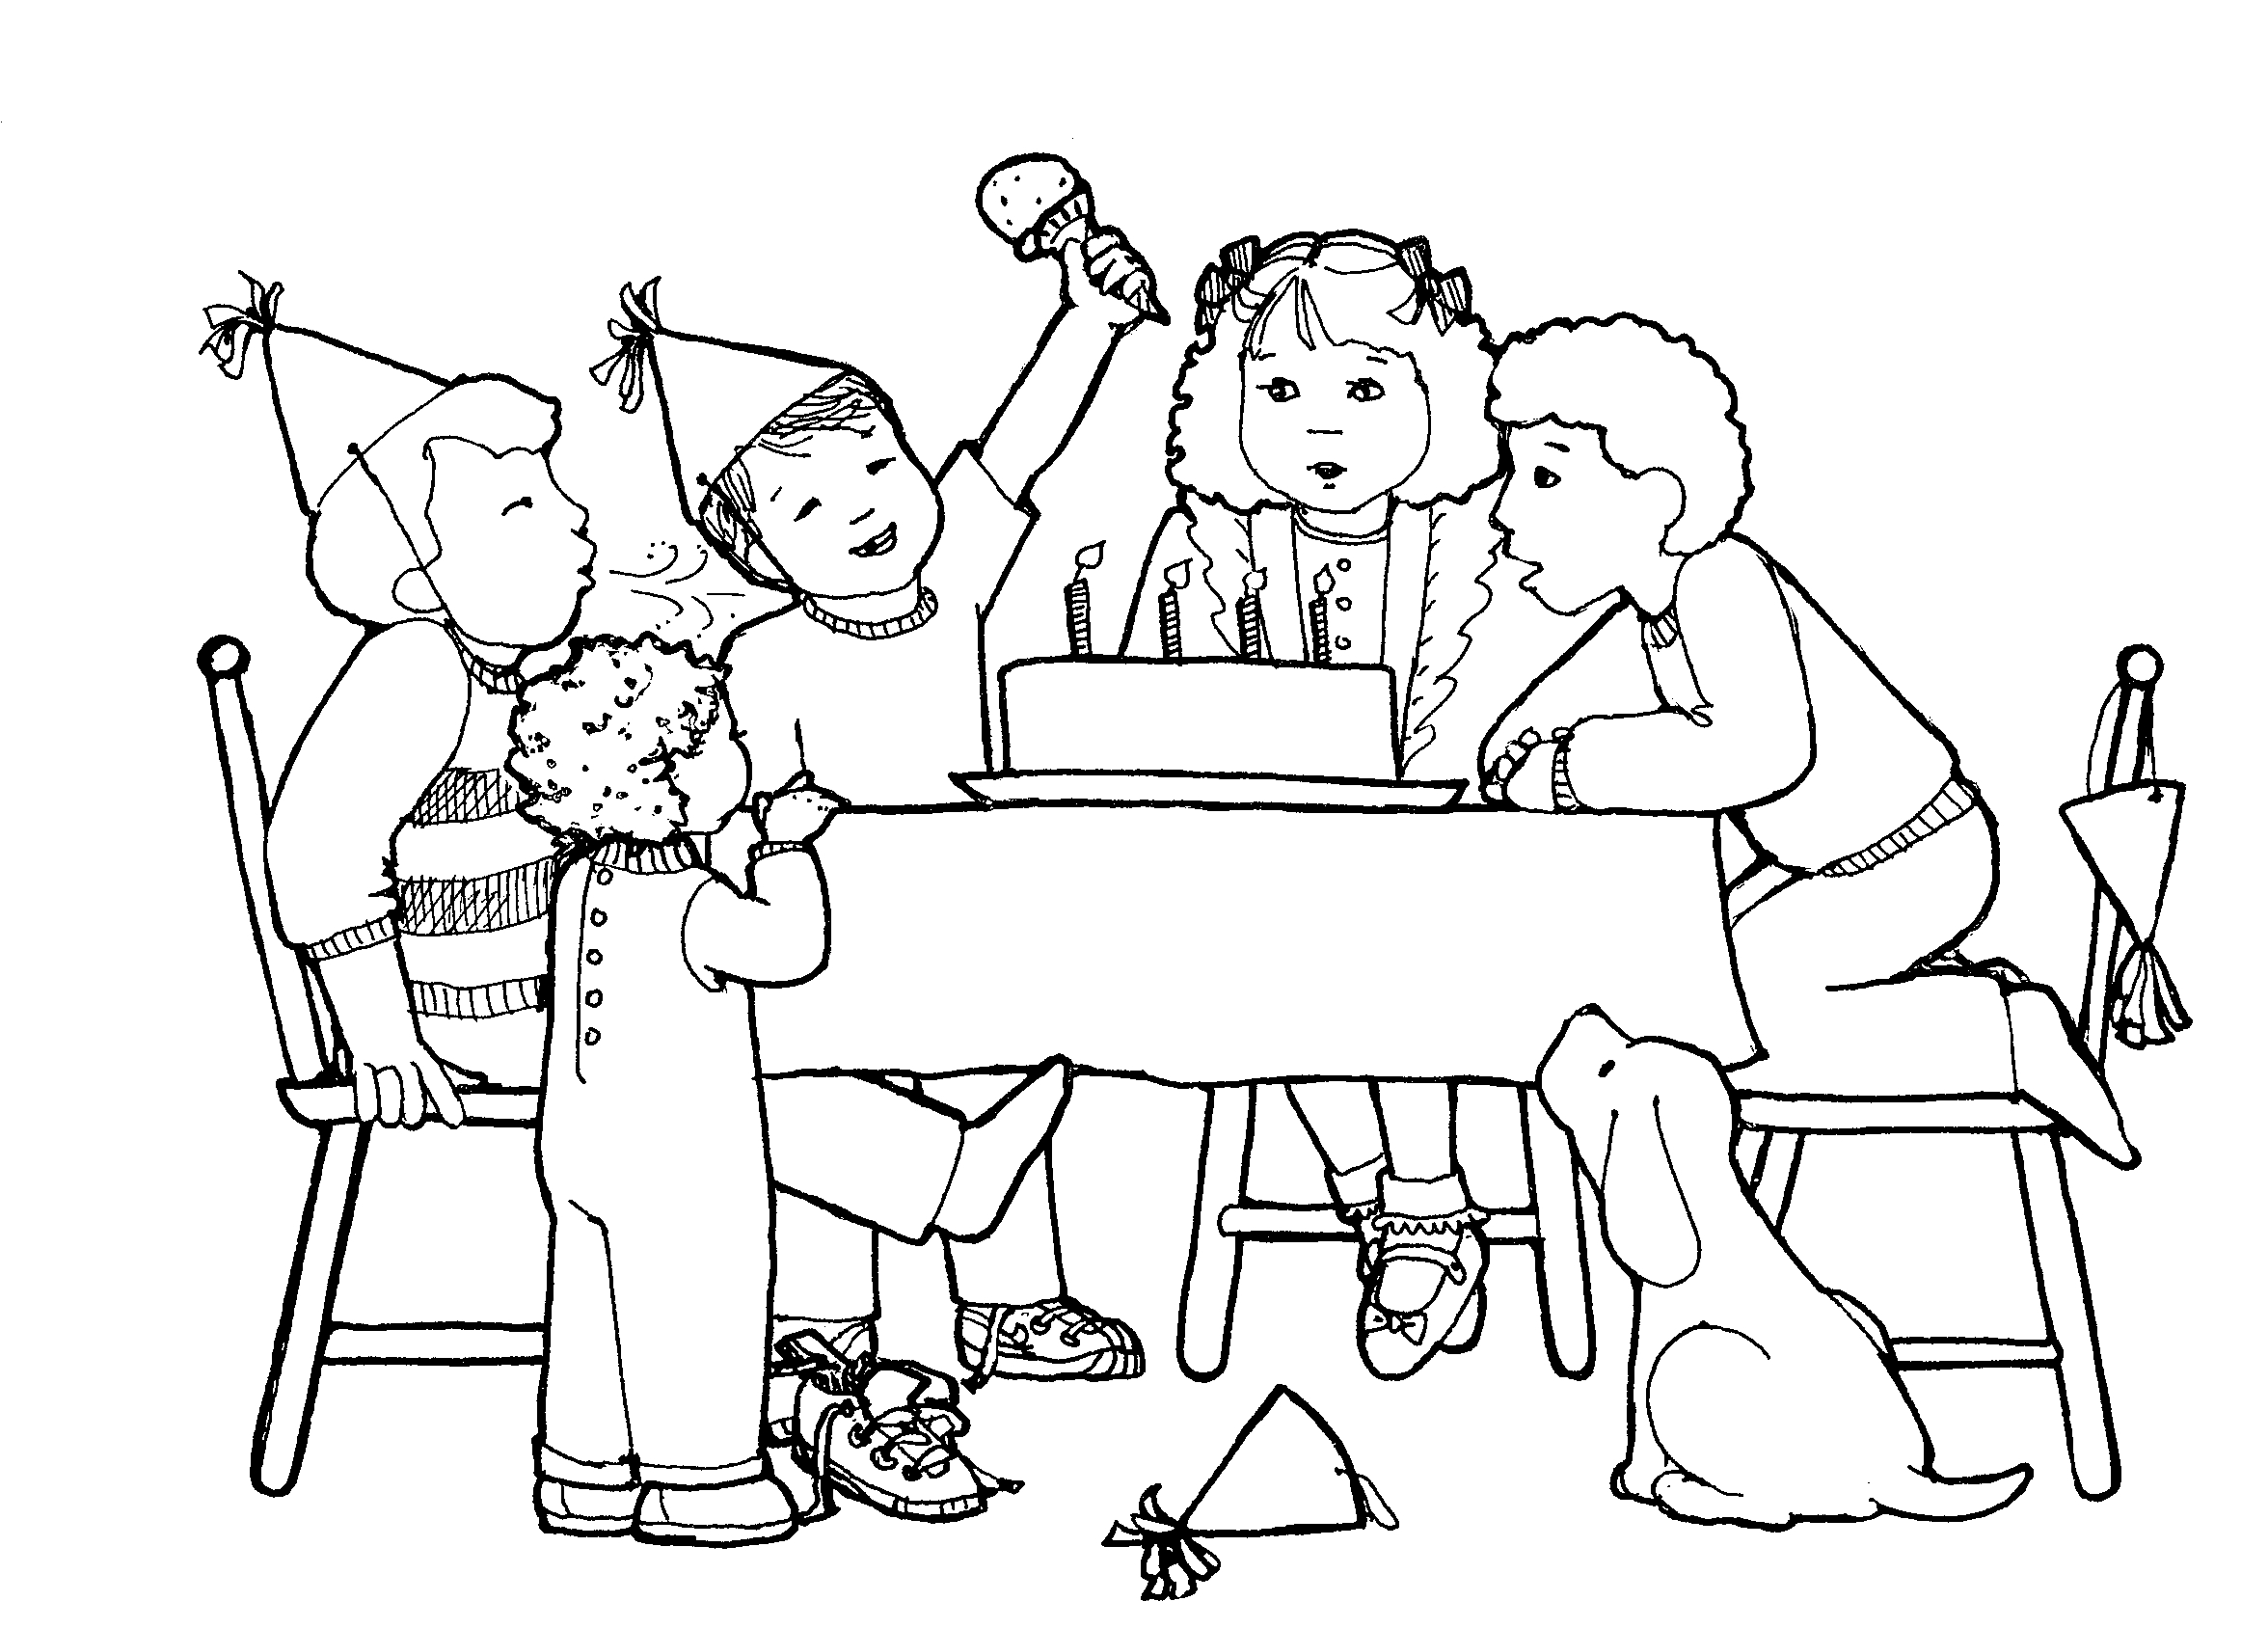 Free Birthday Party Clip Art Black And White, Download Free.